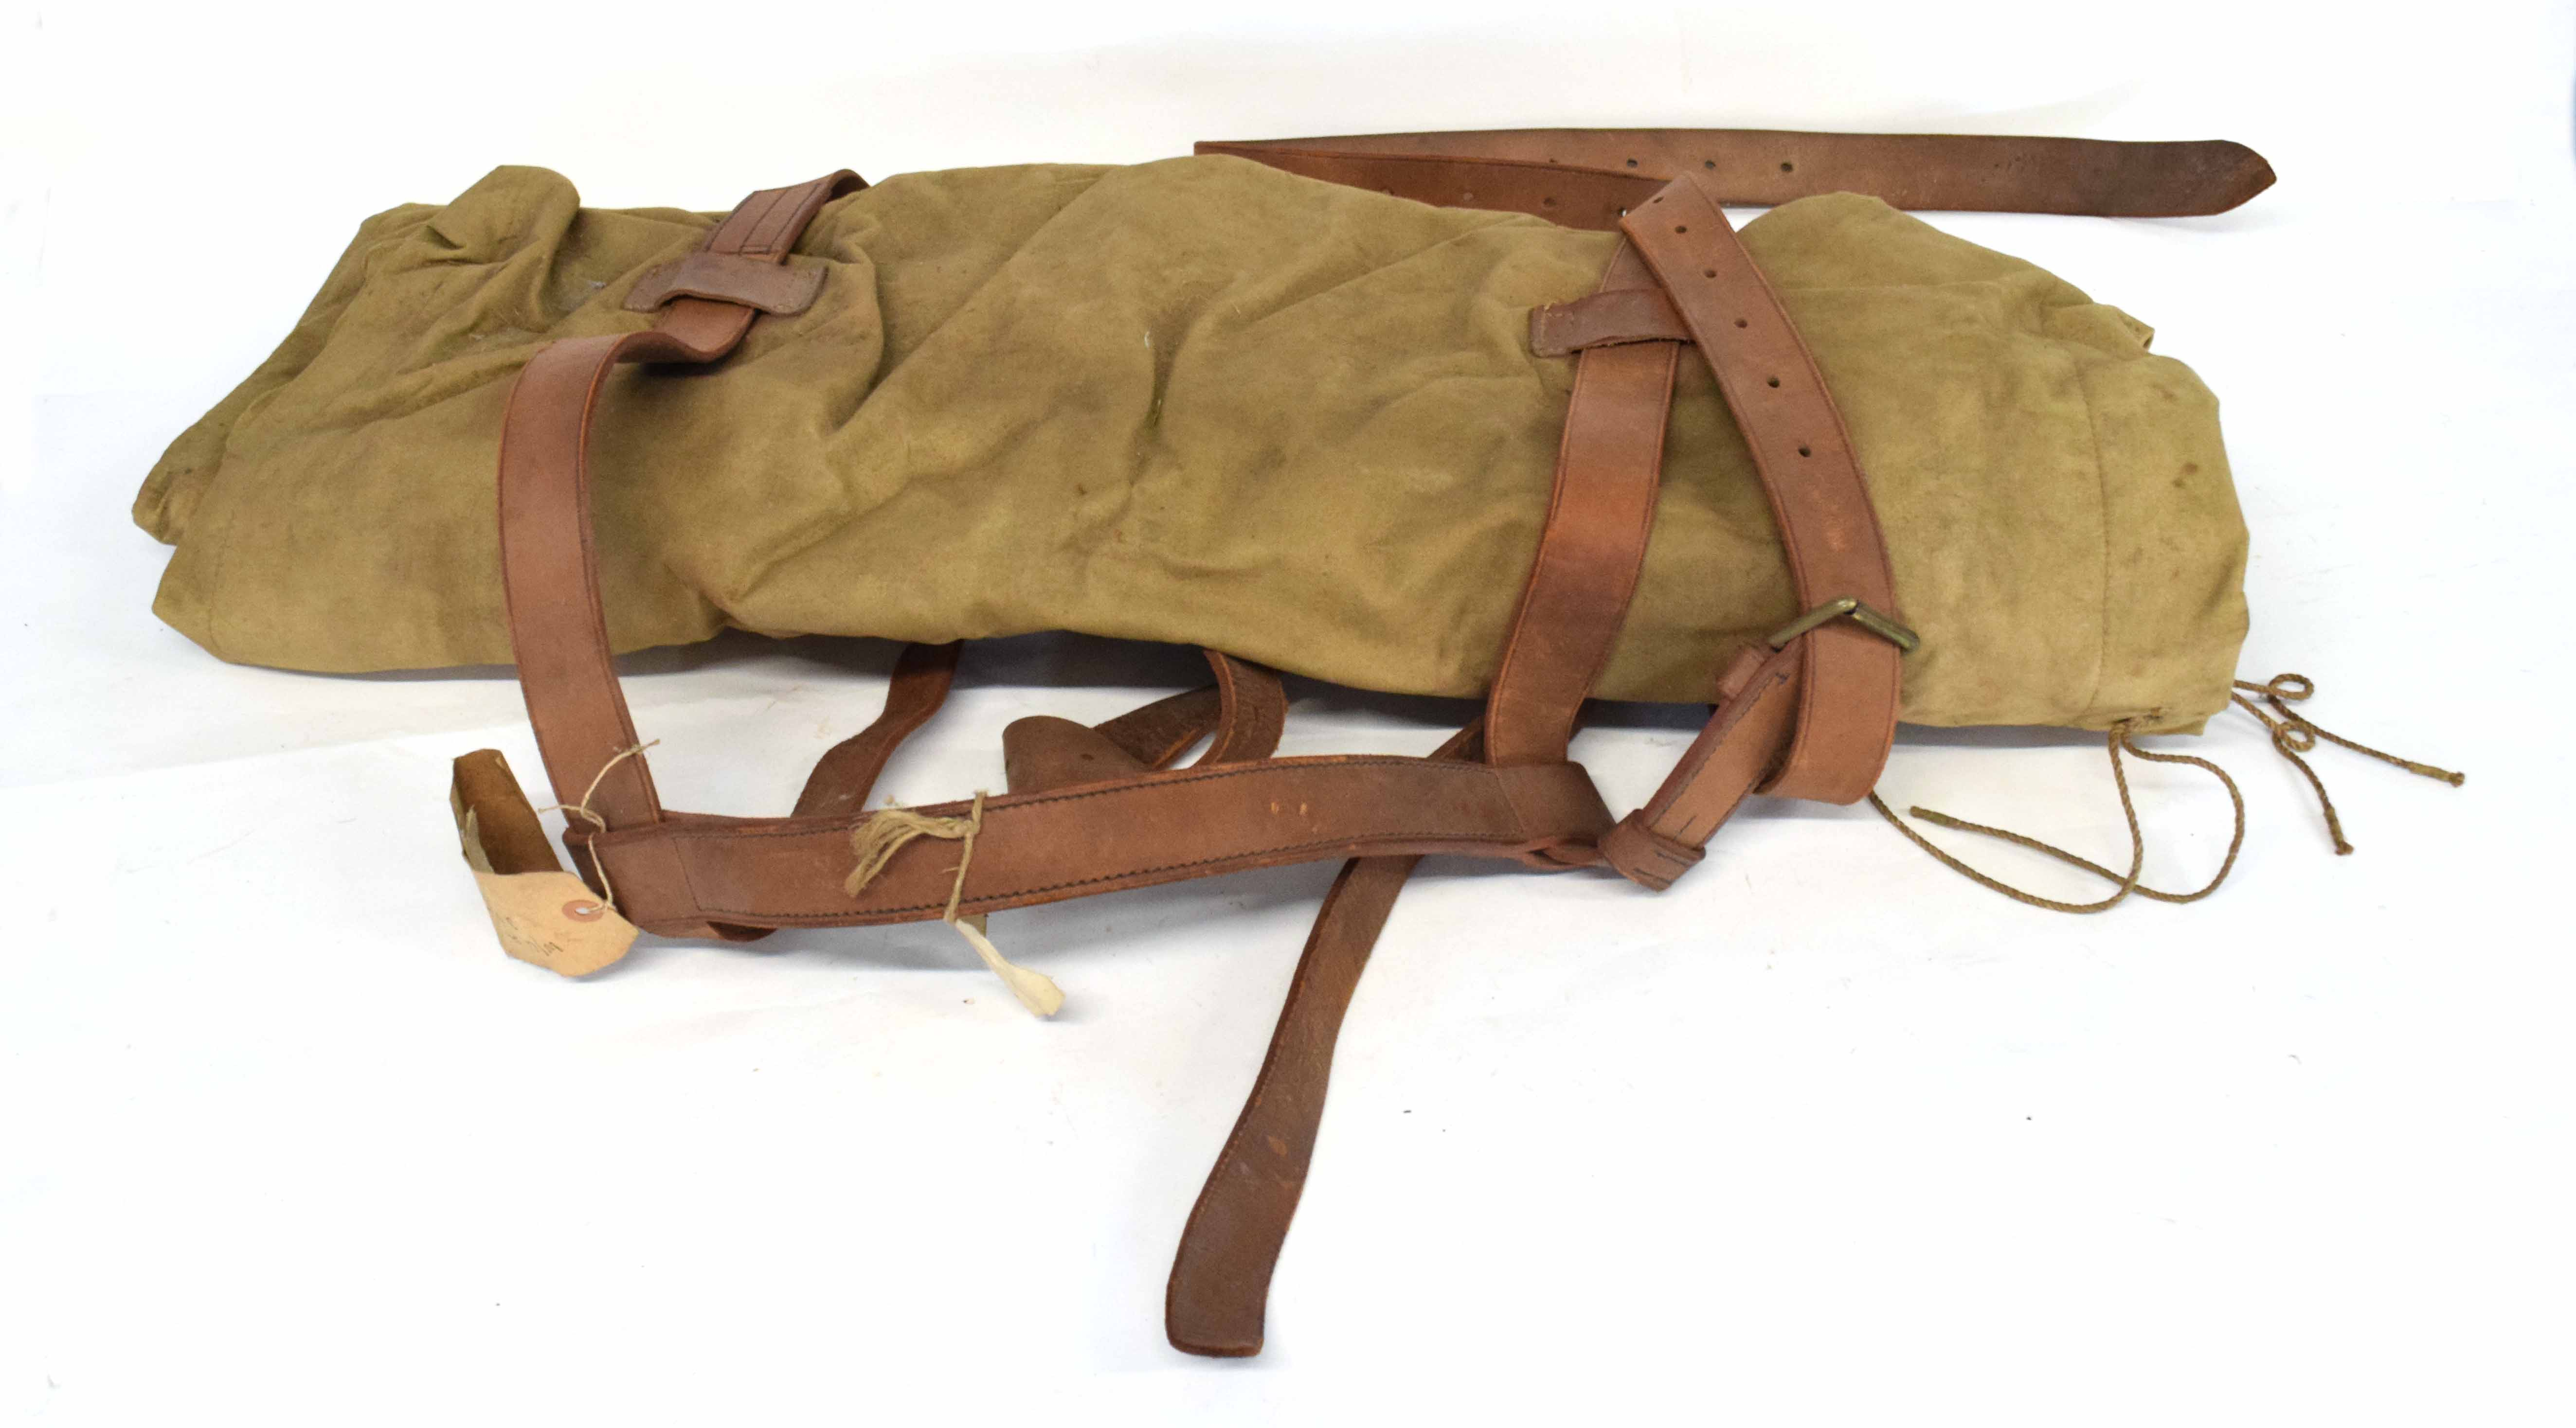 20th century British Military campaign Wellesley valise (lacking content)